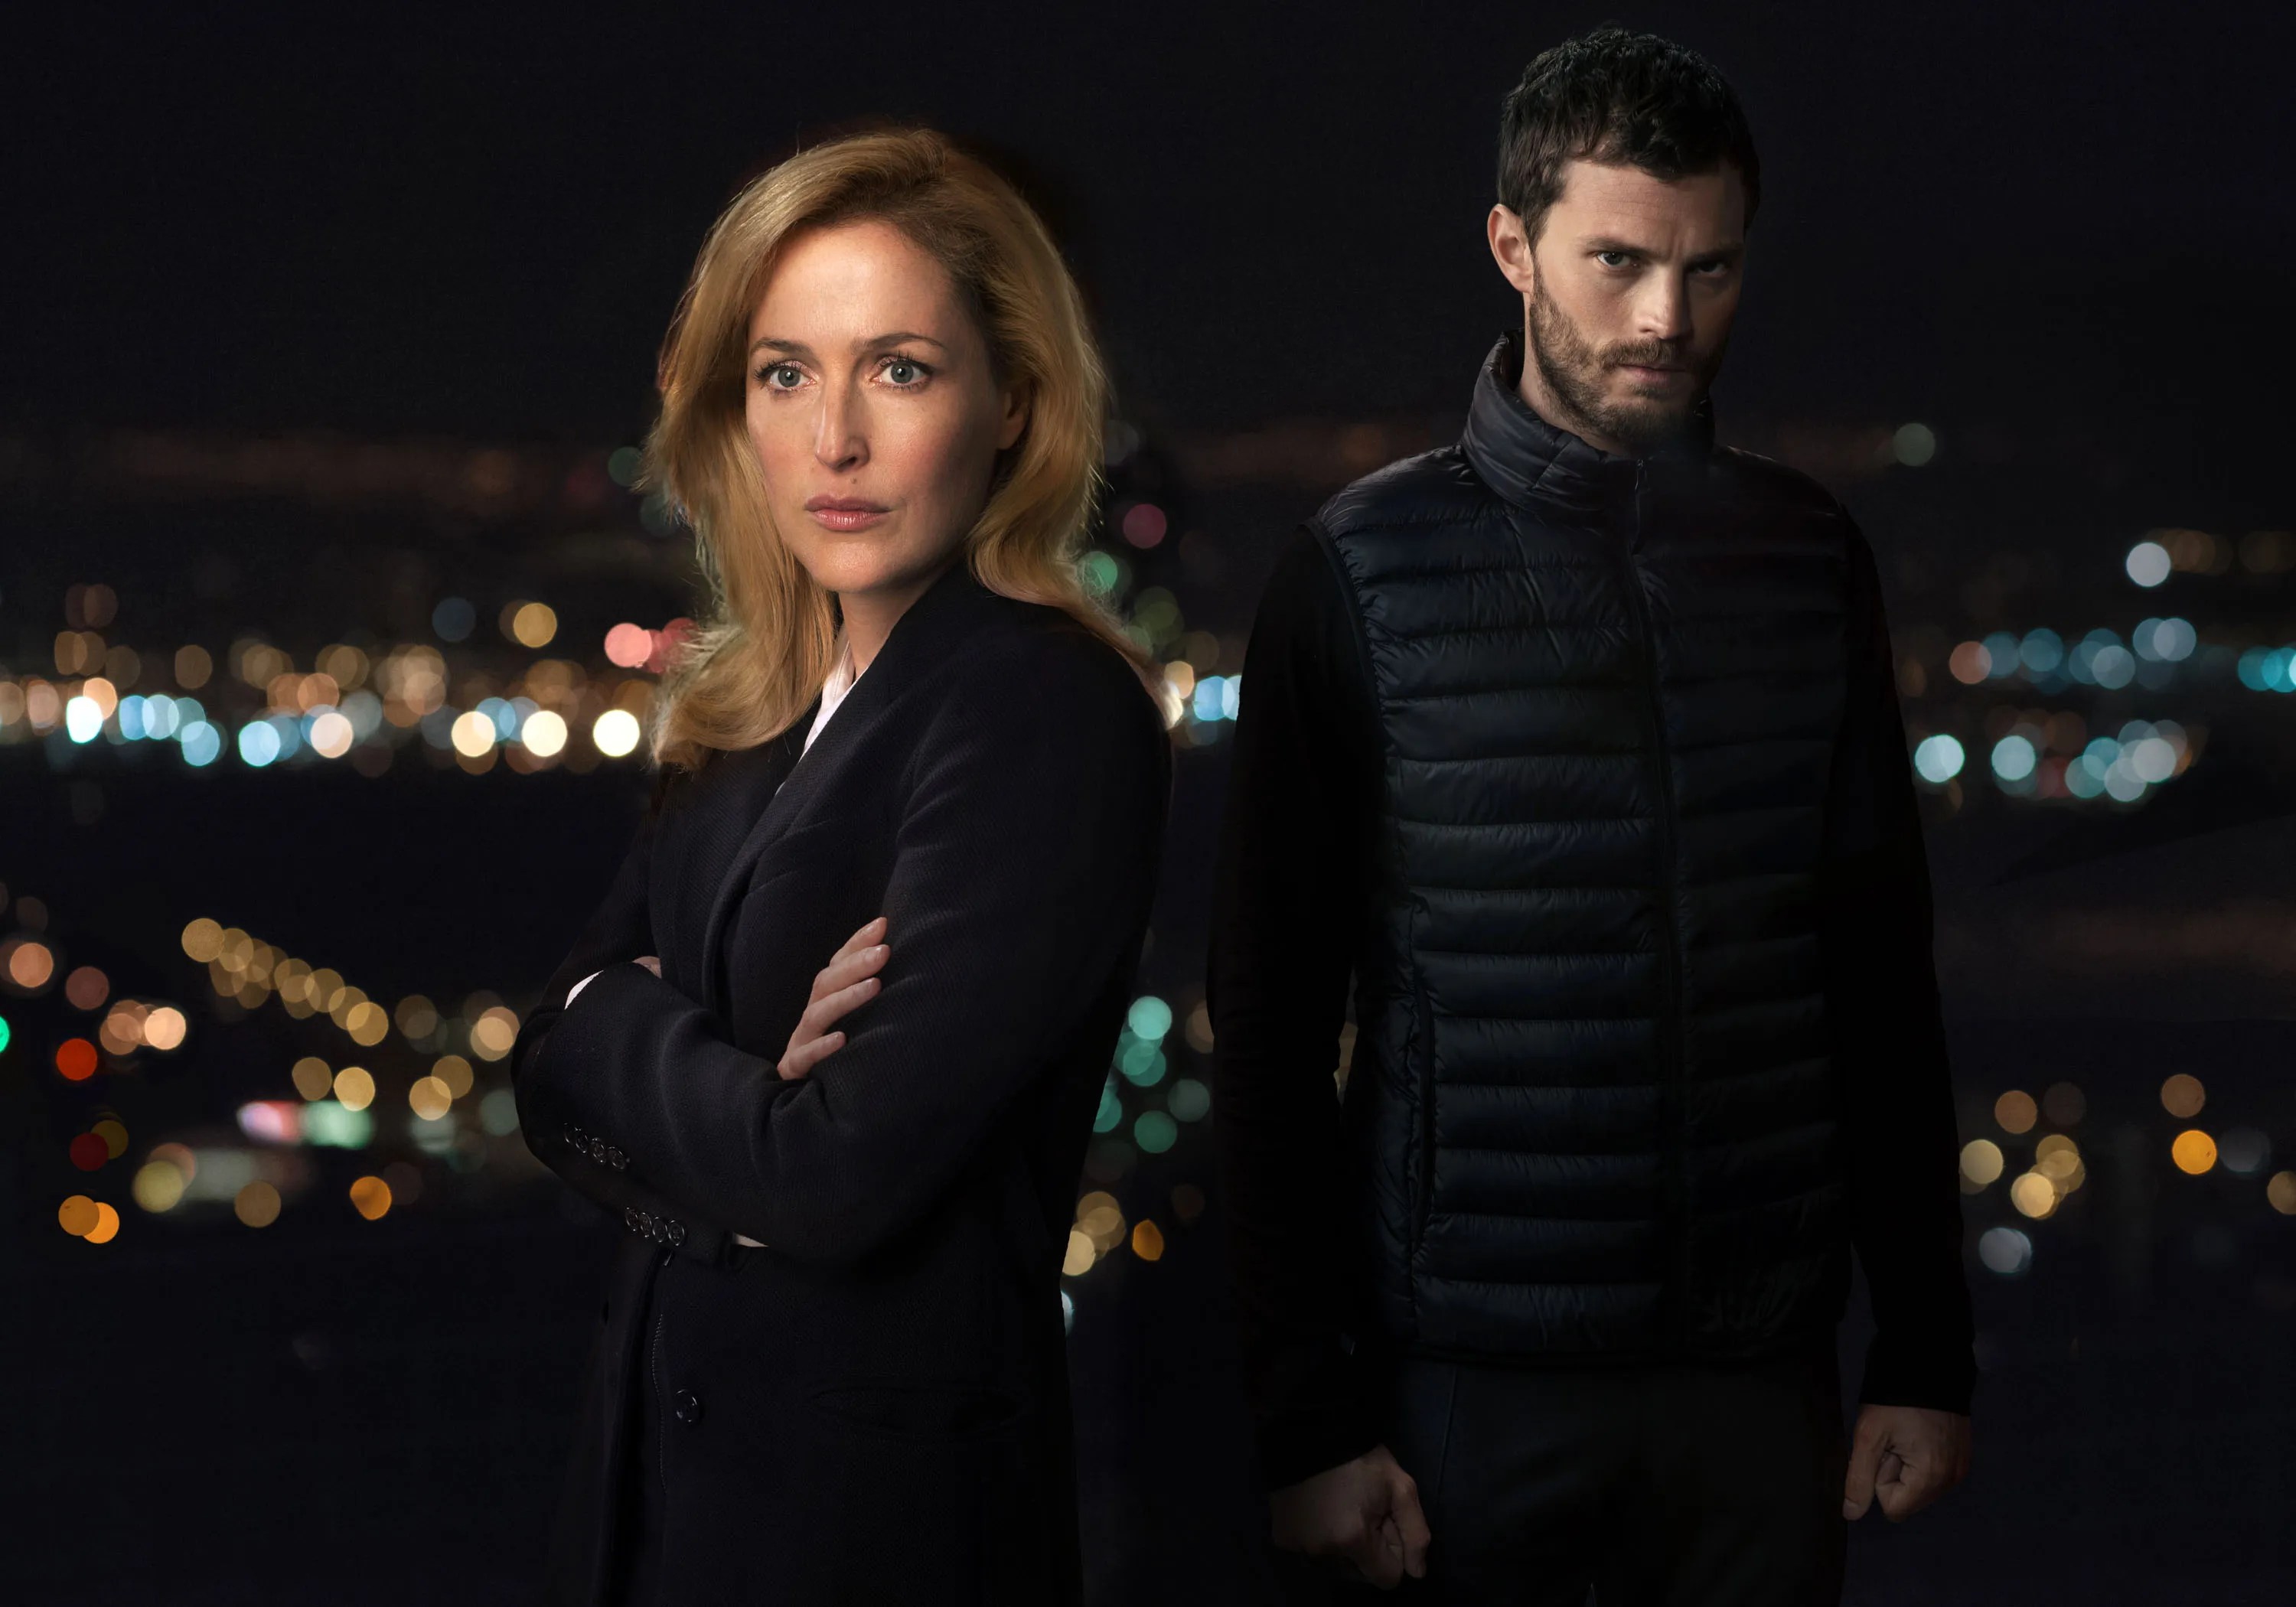 Image result for the fall season 3 anderson and dornan